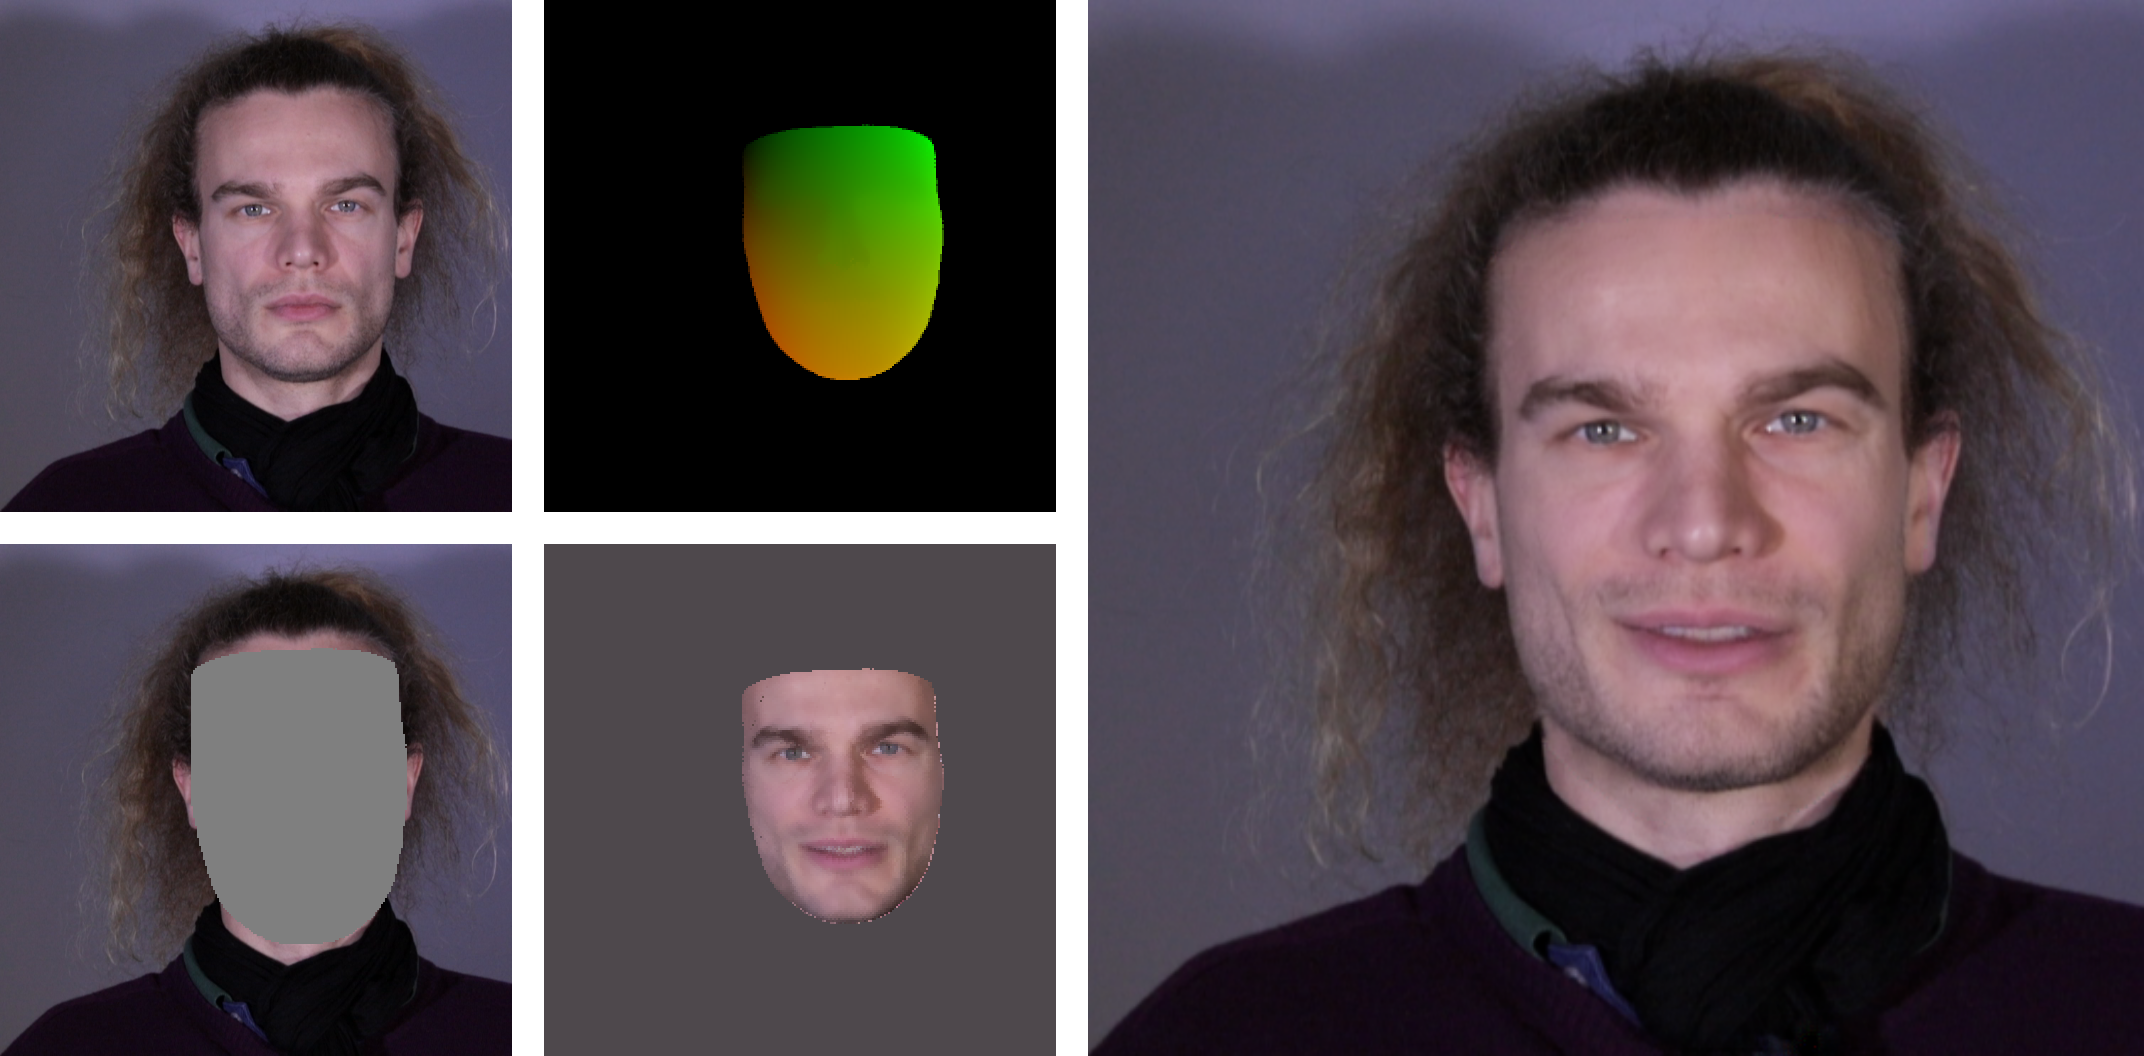 Automatic Face Re-Enactment in Real-World Portrait Videos to Manipulate Emotional Expression